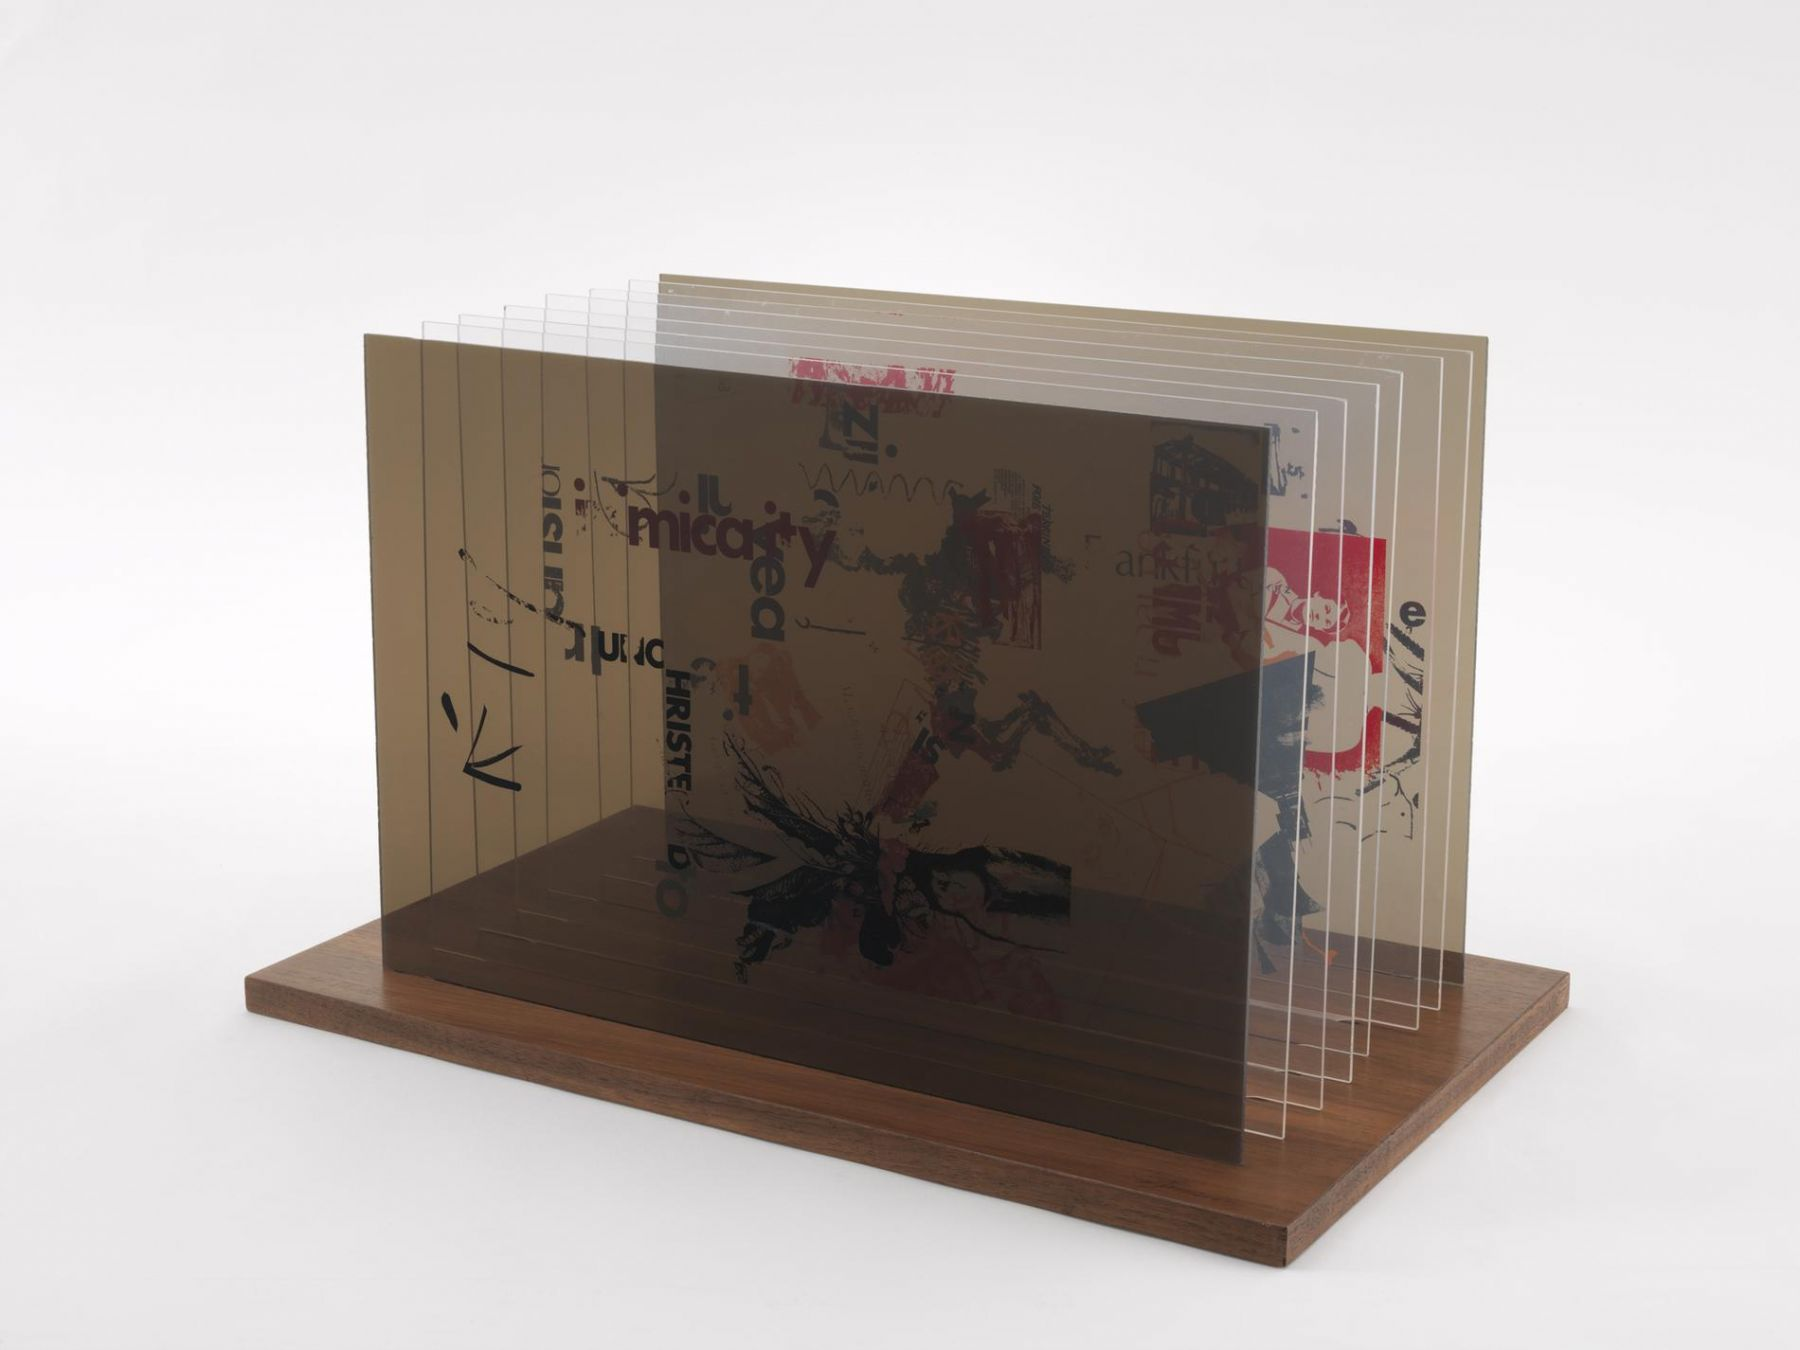 , JOHN CAGENot Wanting to Say Anything About Marcel Plexigram VI,1969Screenprint on eight Plexiglas panels with walnut base14 x 20 x 1/8 in. (35.6 x 50.8 x 0.3 cm)